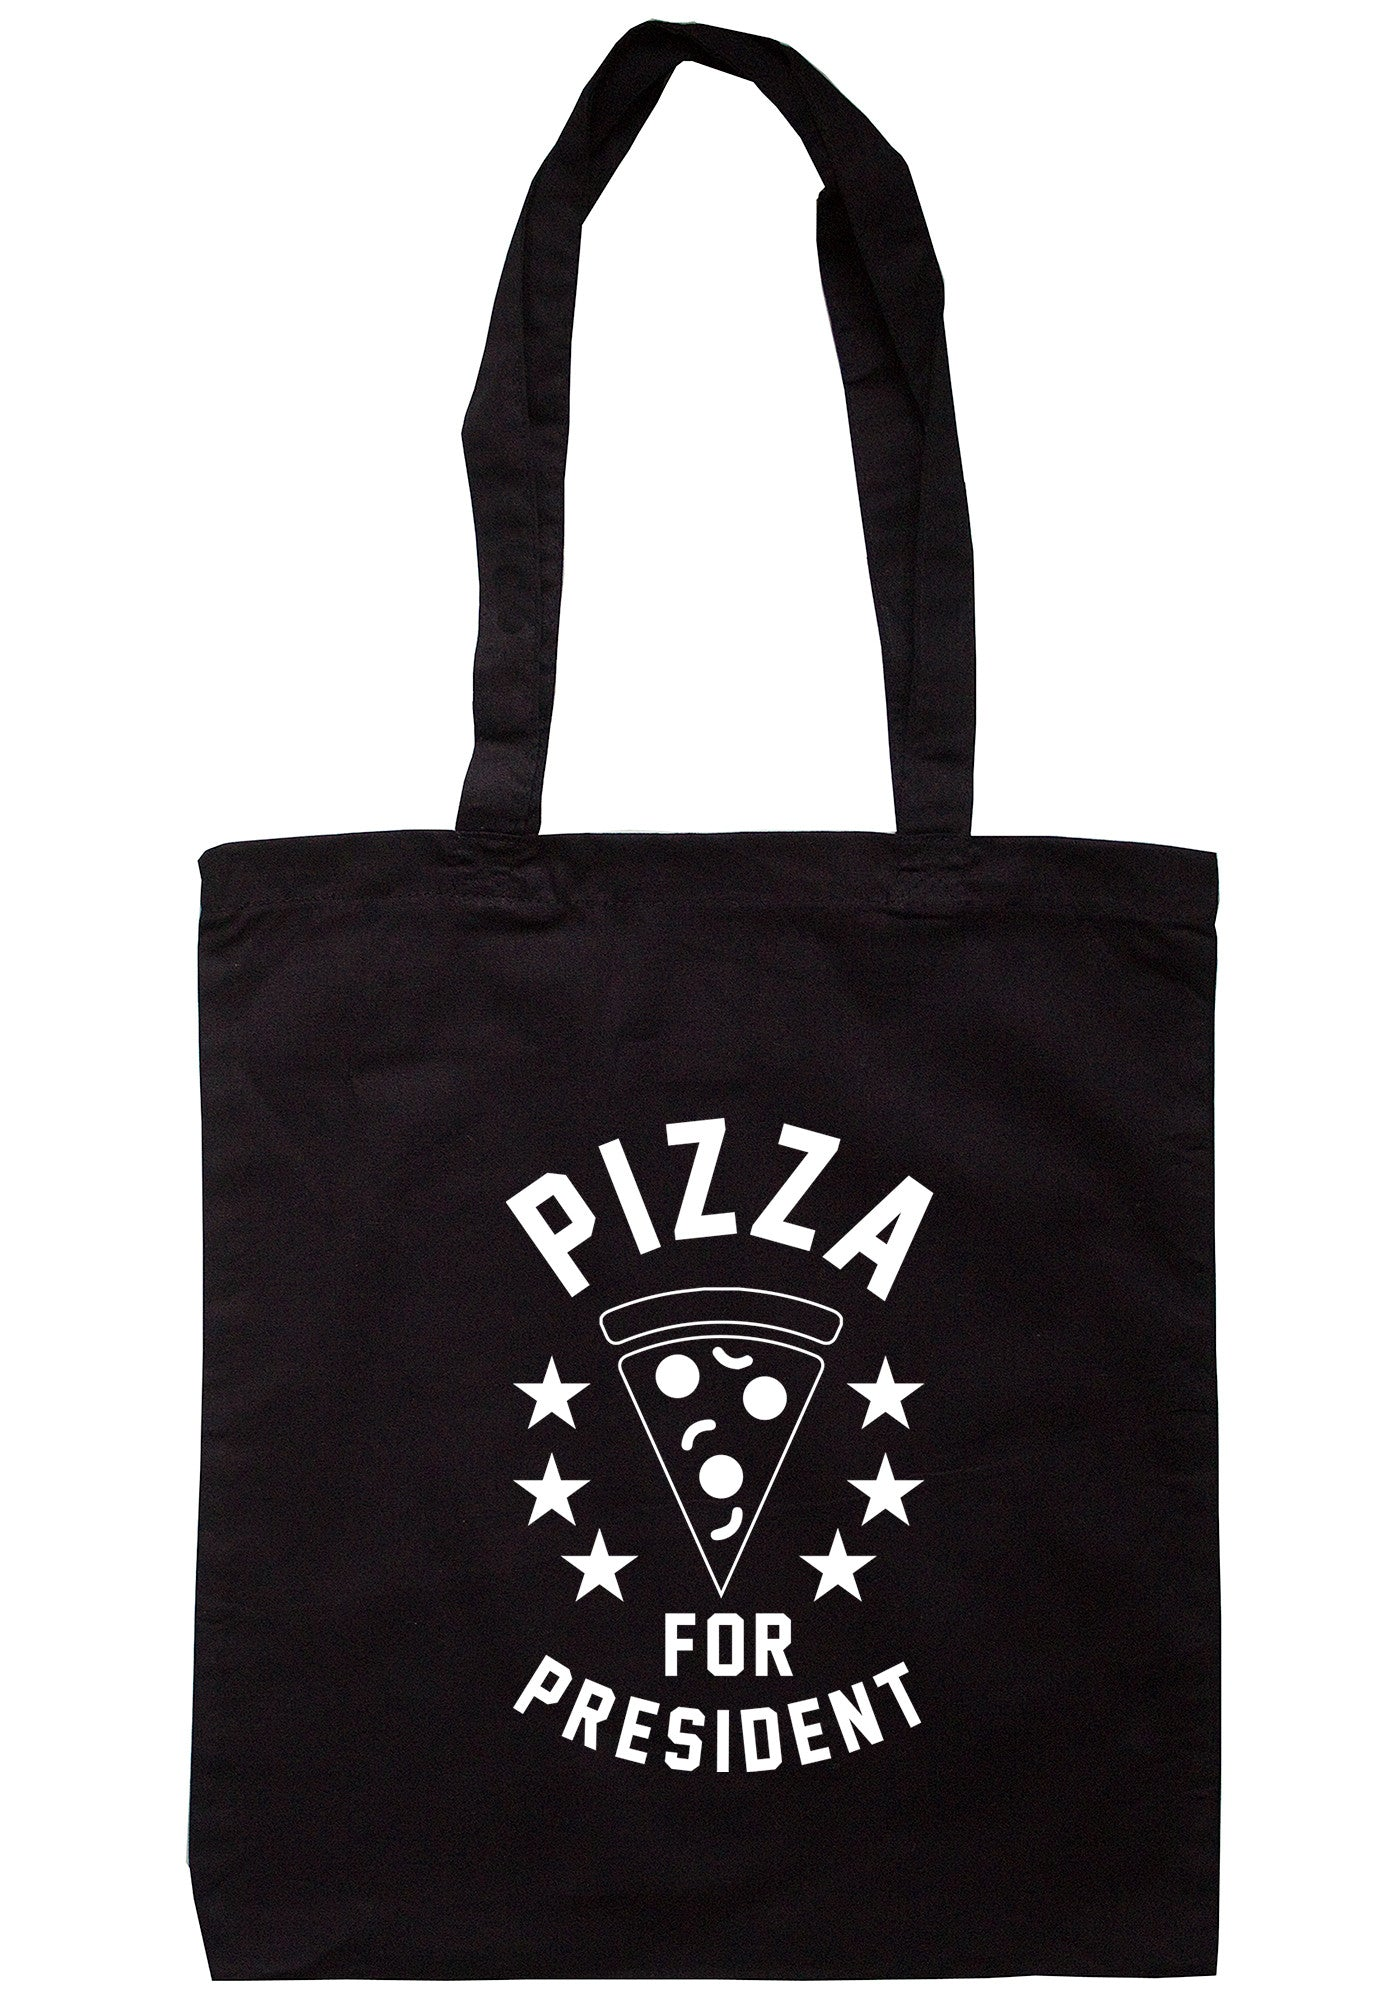 Pizza For President Tote Bag TB0489 - Illustrated Identity Ltd.